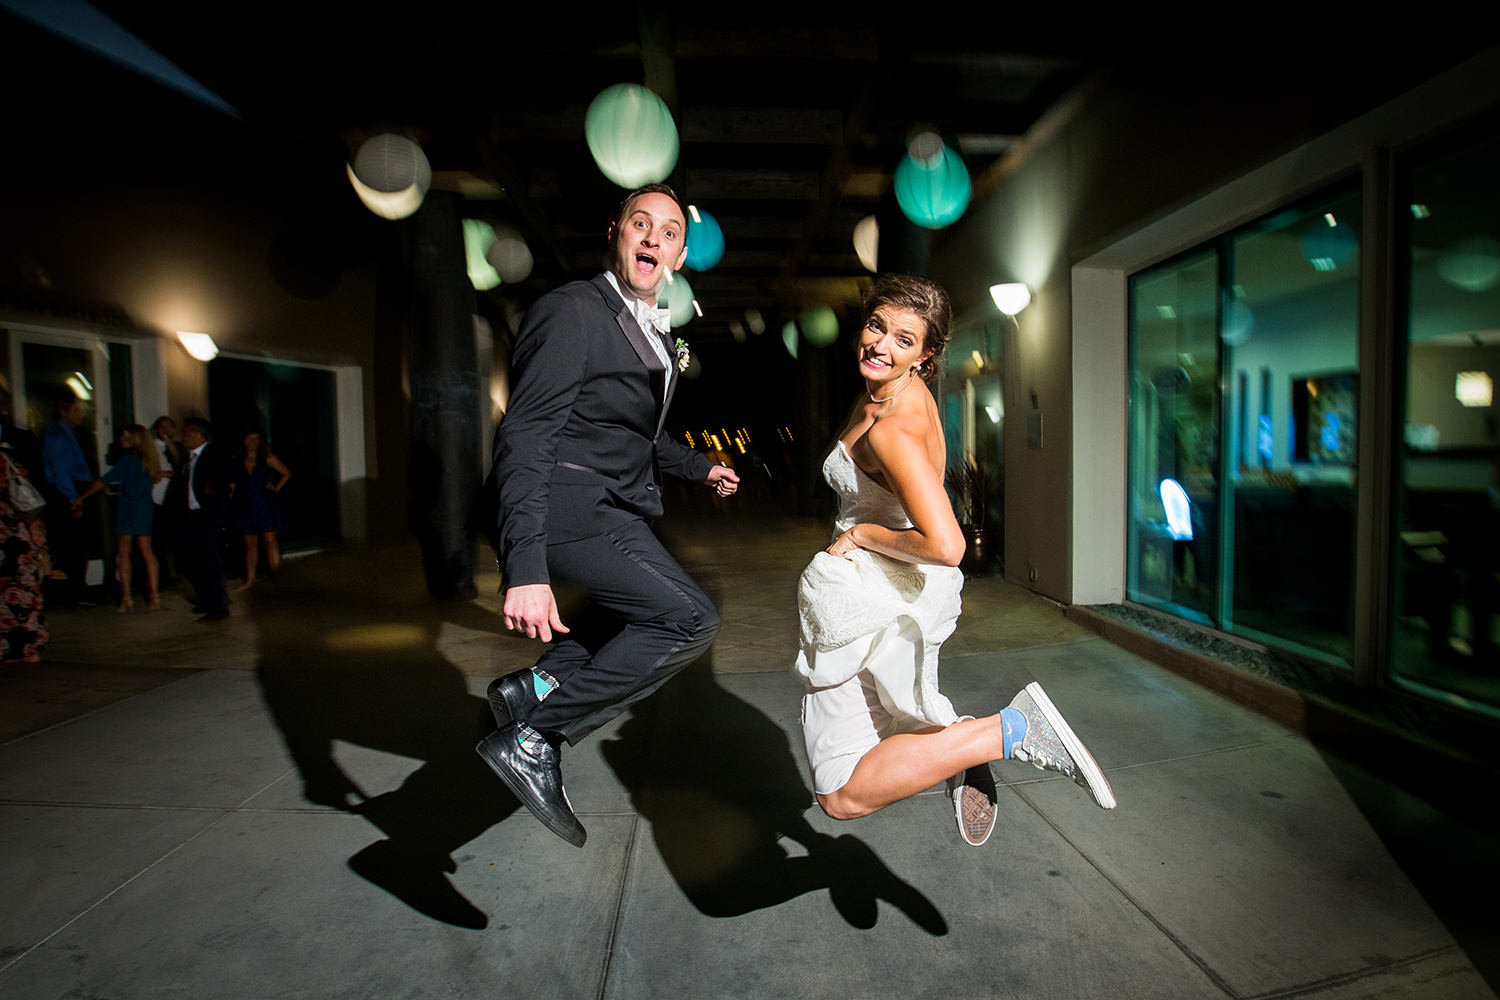 jumping night time shot with bride and groom